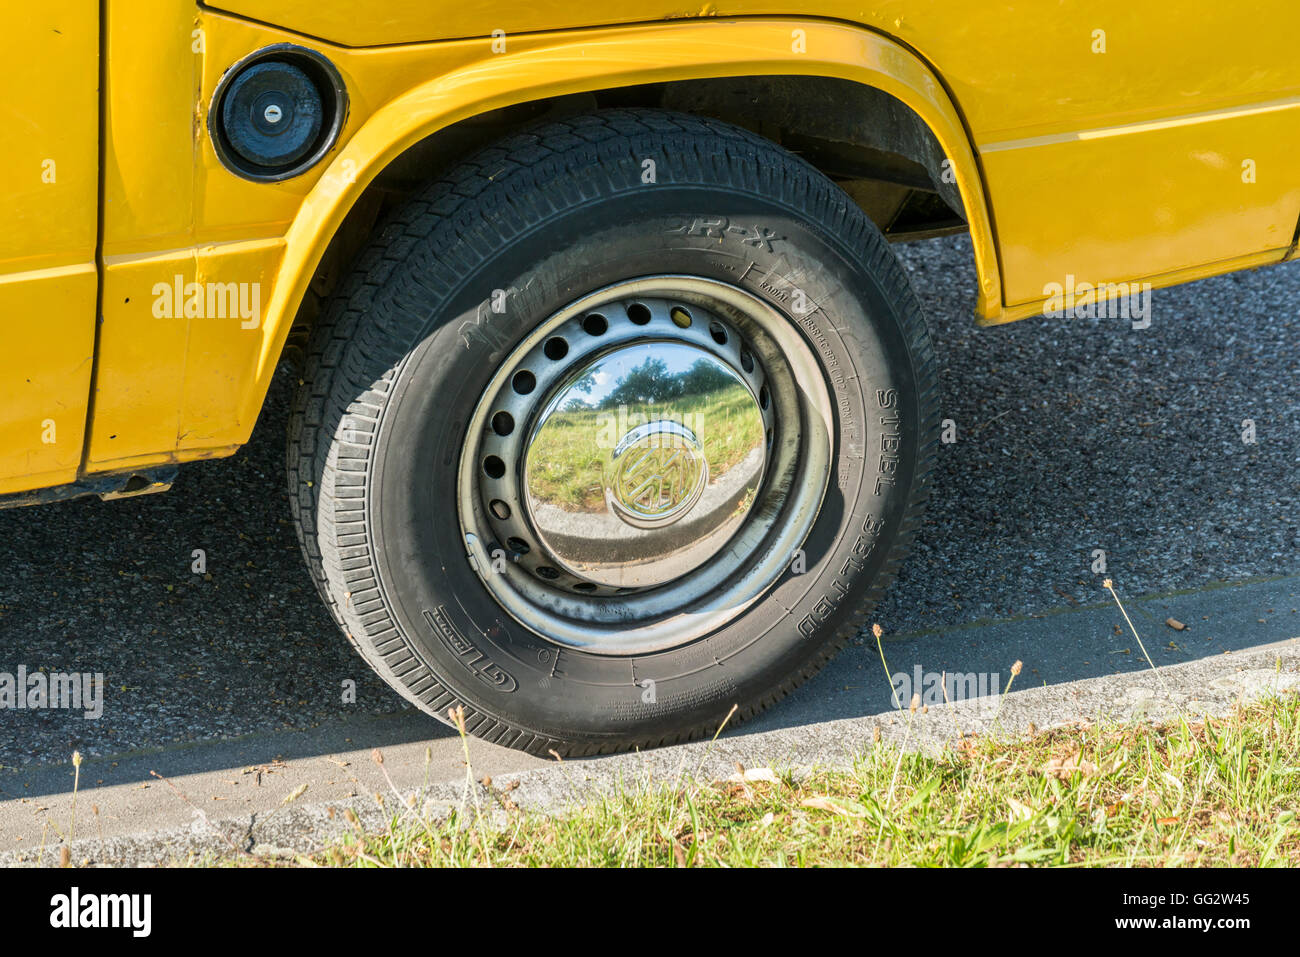 Regensburg, Bavaria, Germany – July 18, 2016: The picture shows a closeup of a chrome felloe on a yellow VW Bus - Stock Image